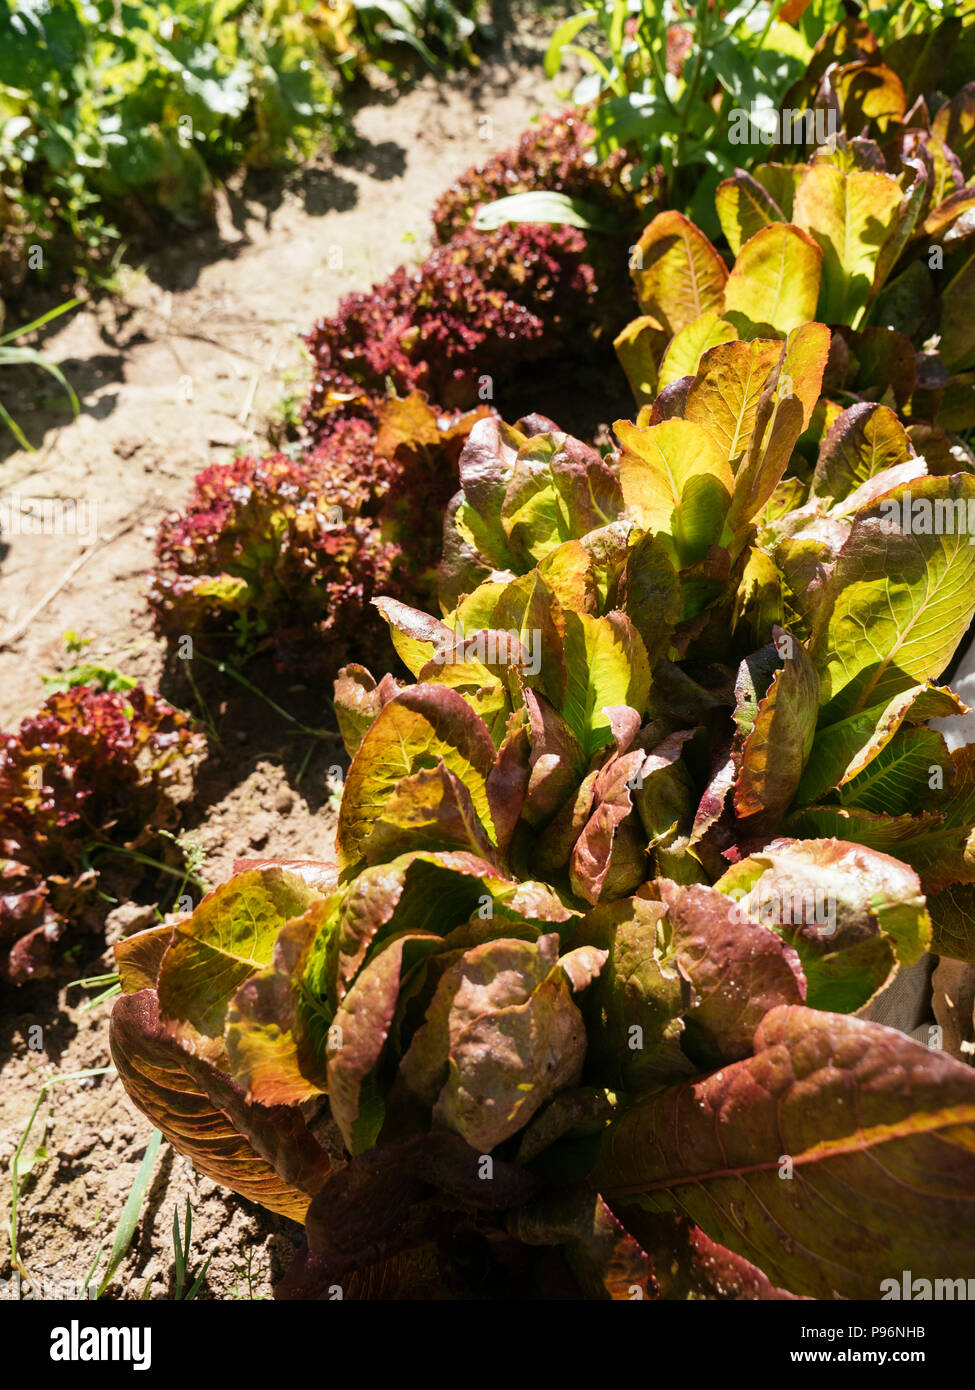 Lollo rosso and Red Cimmaron Romaine lettuce growing in a vegetable garden. Stock Photo